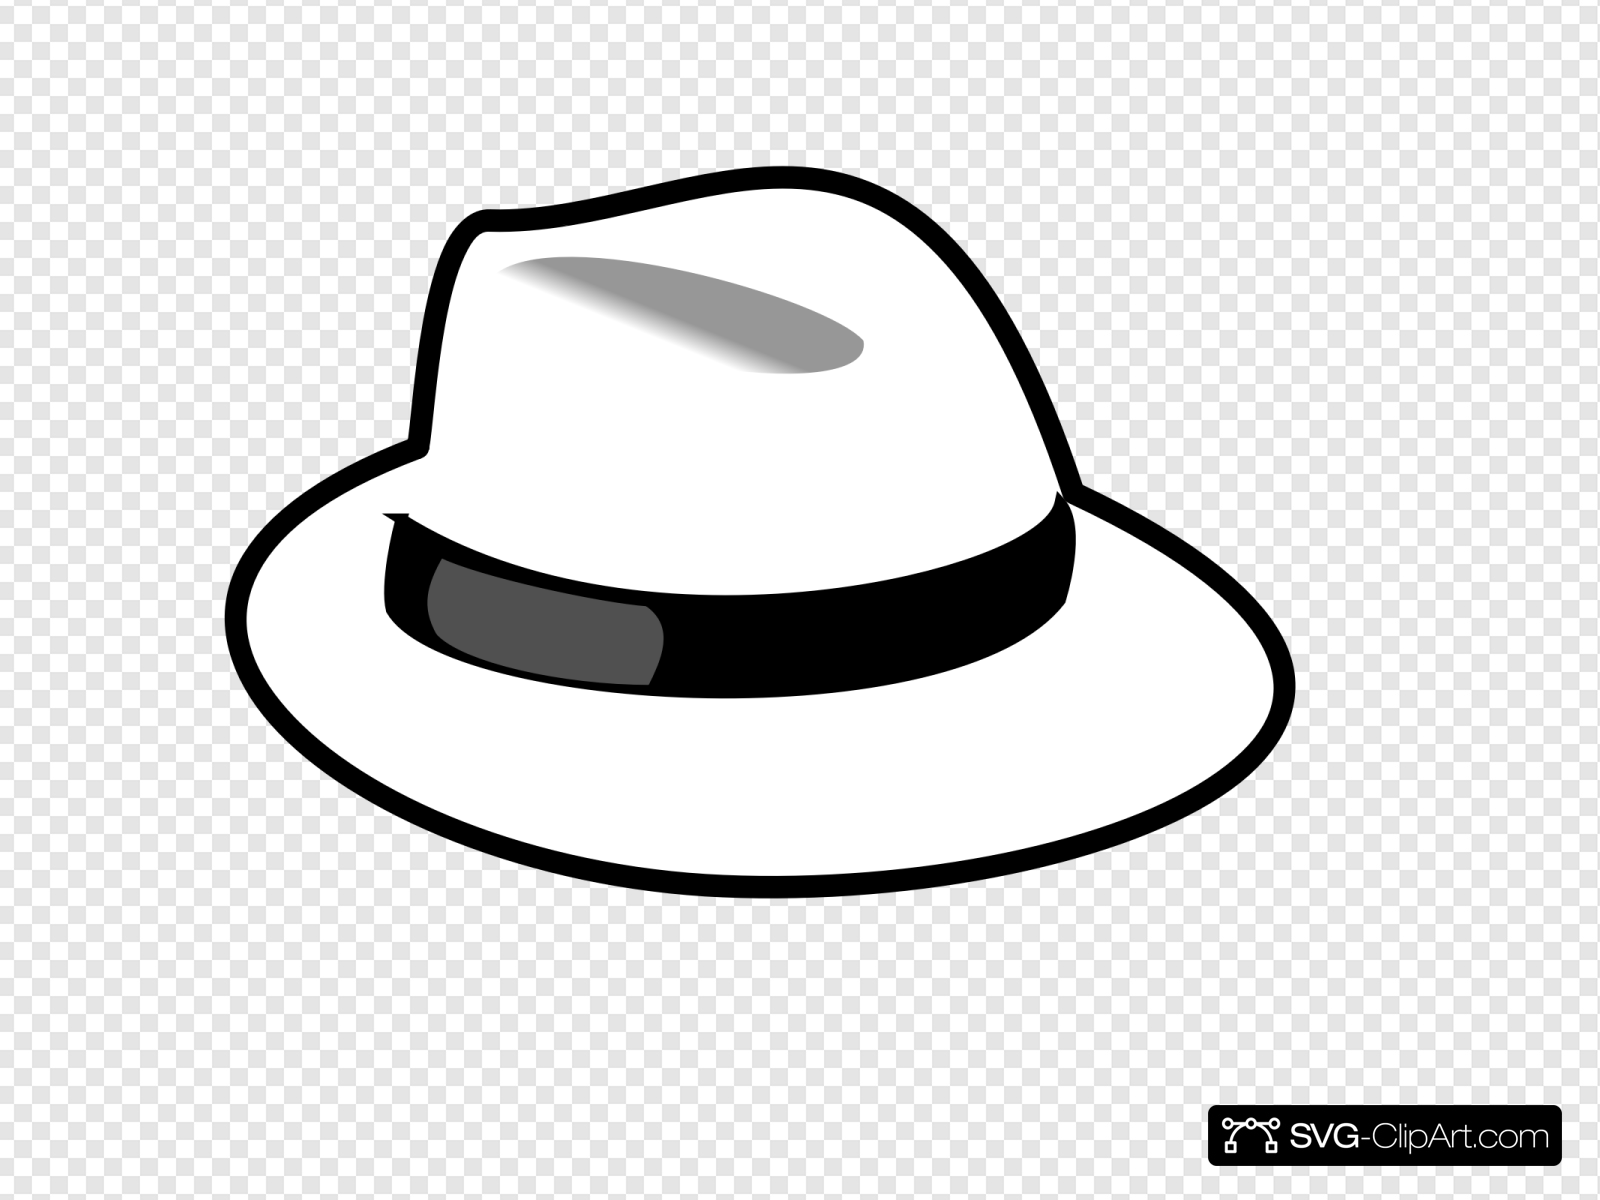 White Hat Clip art, Icon and SVG.